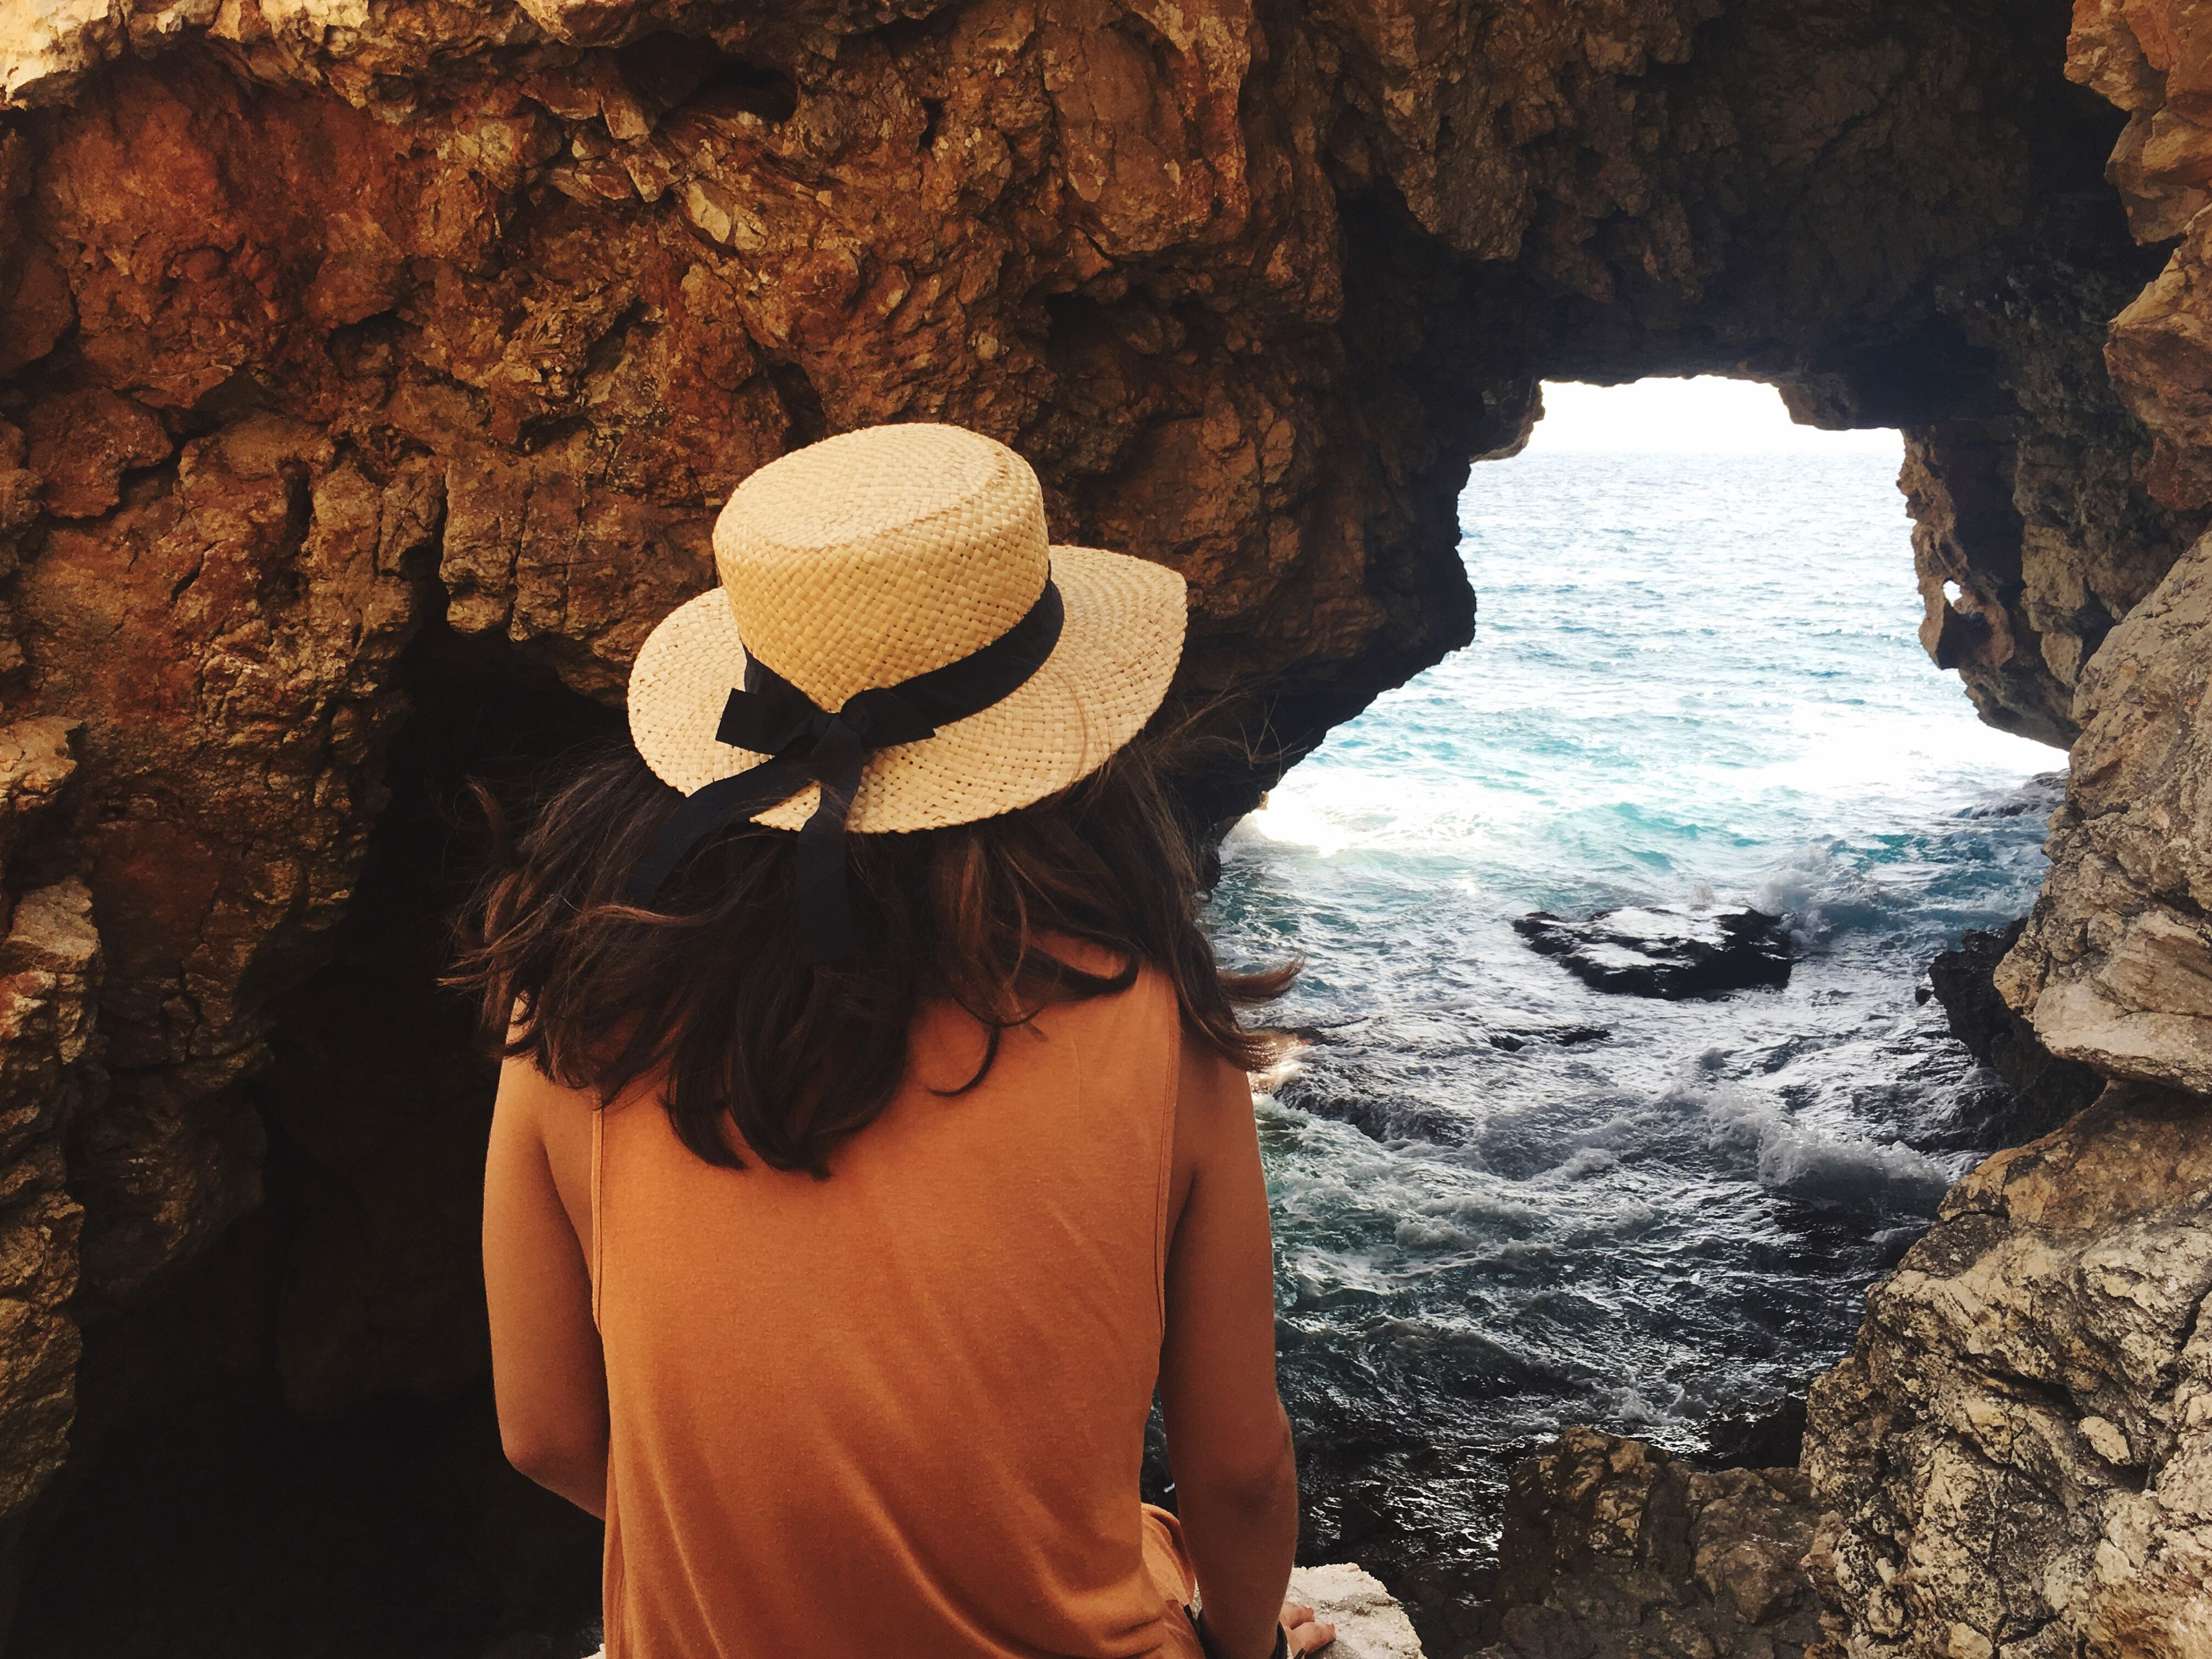 standing, hat, water, person, obscured face, front view, sea, in front of, mask - disguise, rock formation, nature, outdoors, scenics, tranquility